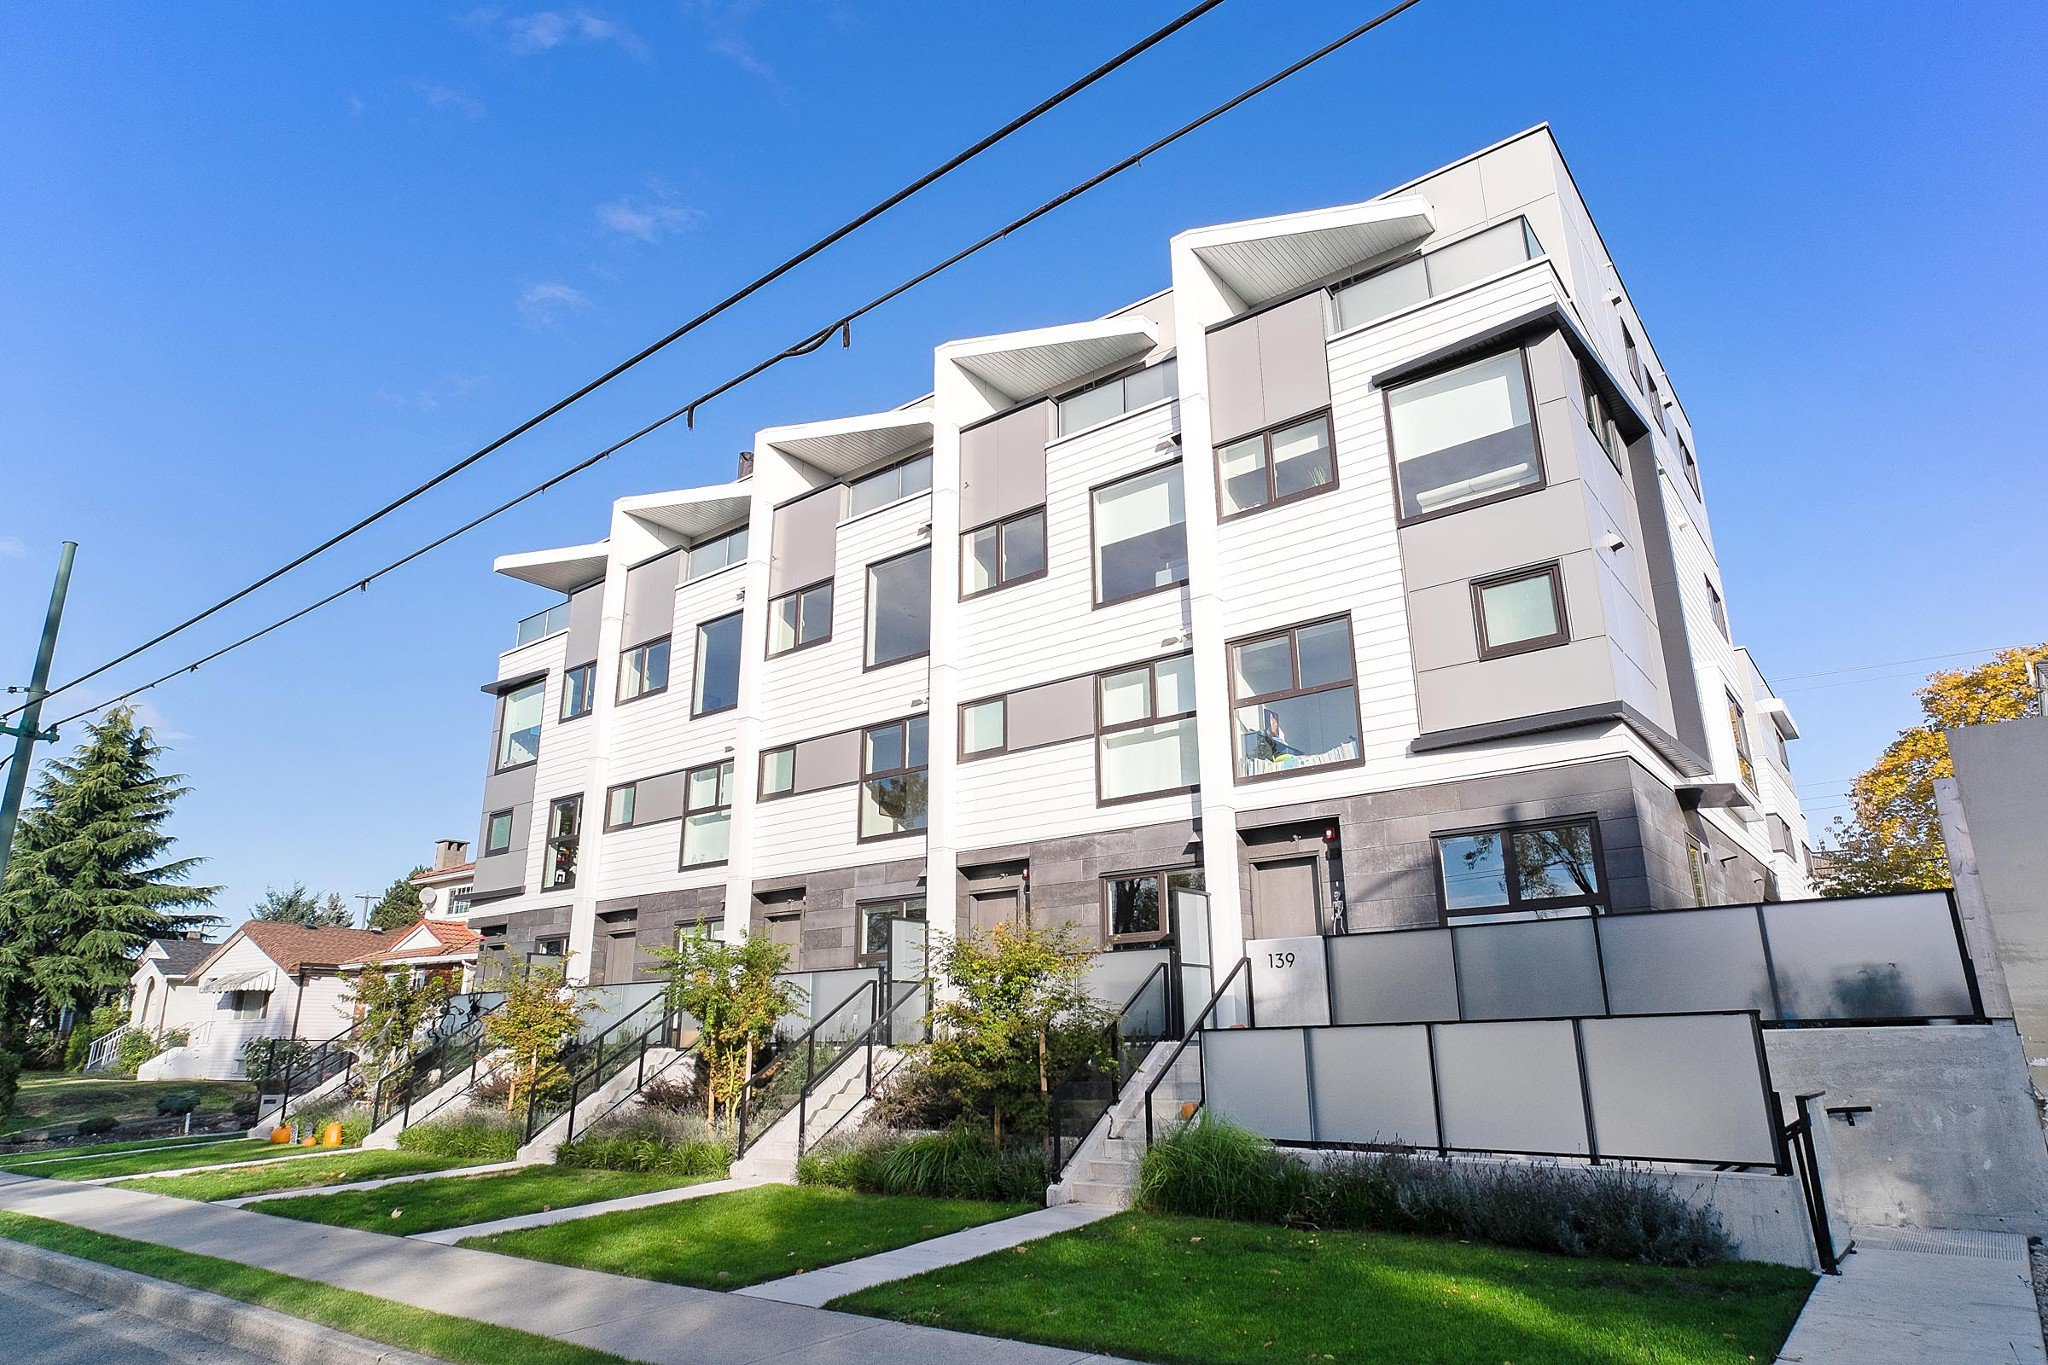 """Main Photo: 151 W 41ST Avenue in Vancouver: Oakridge VW Townhouse for sale in """"WOODSTOCK 1"""" (Vancouver West)  : MLS®# R2526293"""